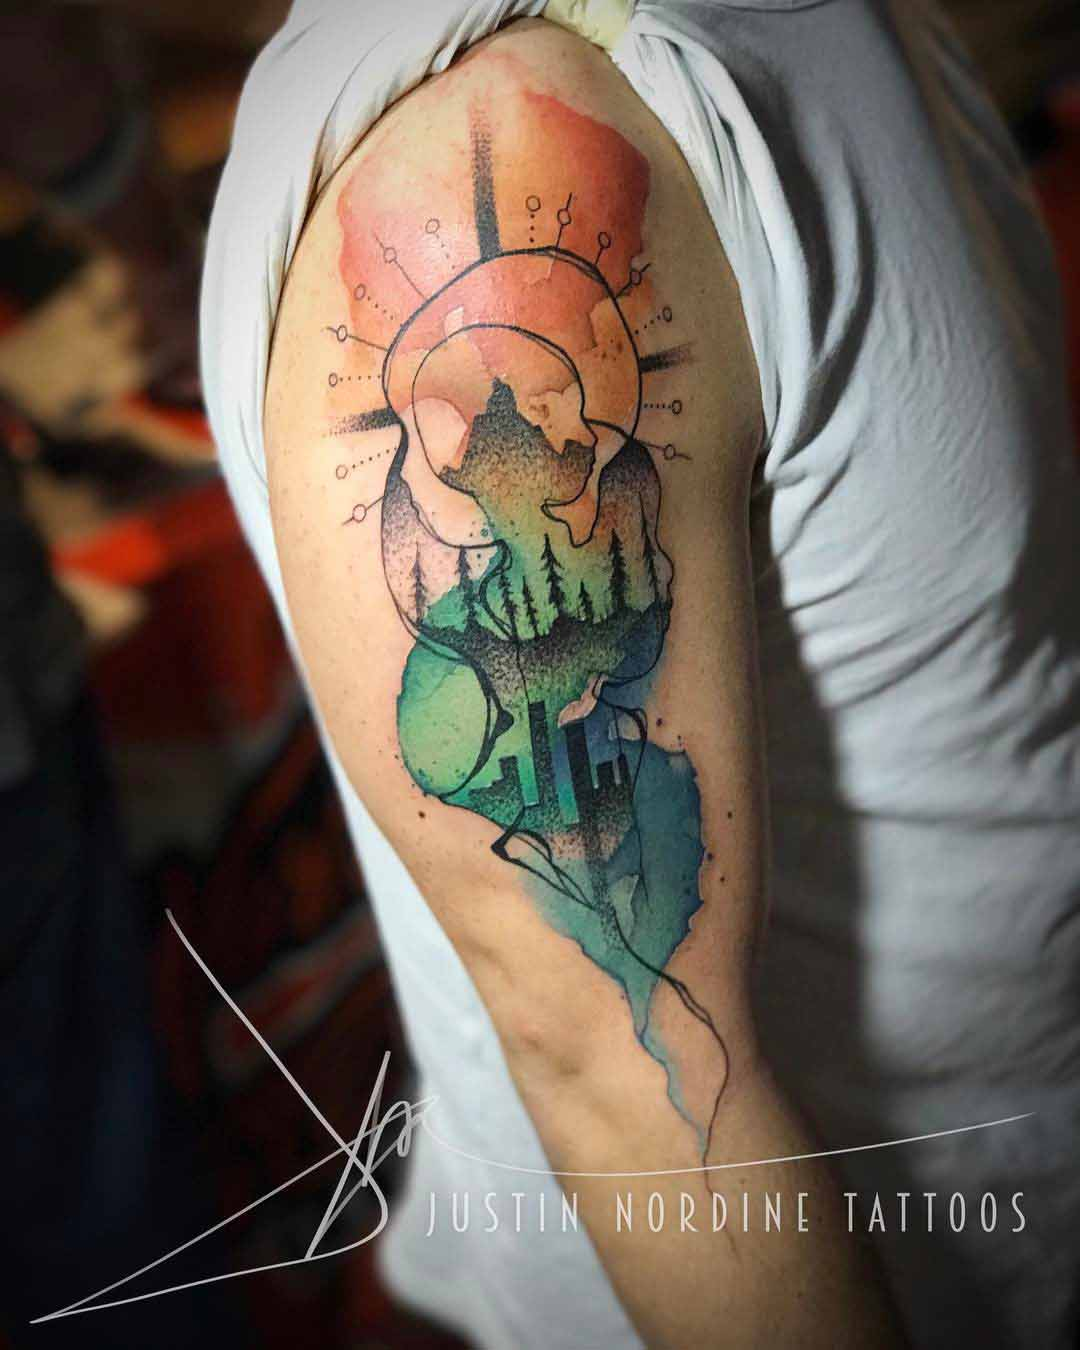 watercolor style nature and city tattoo on shoulder